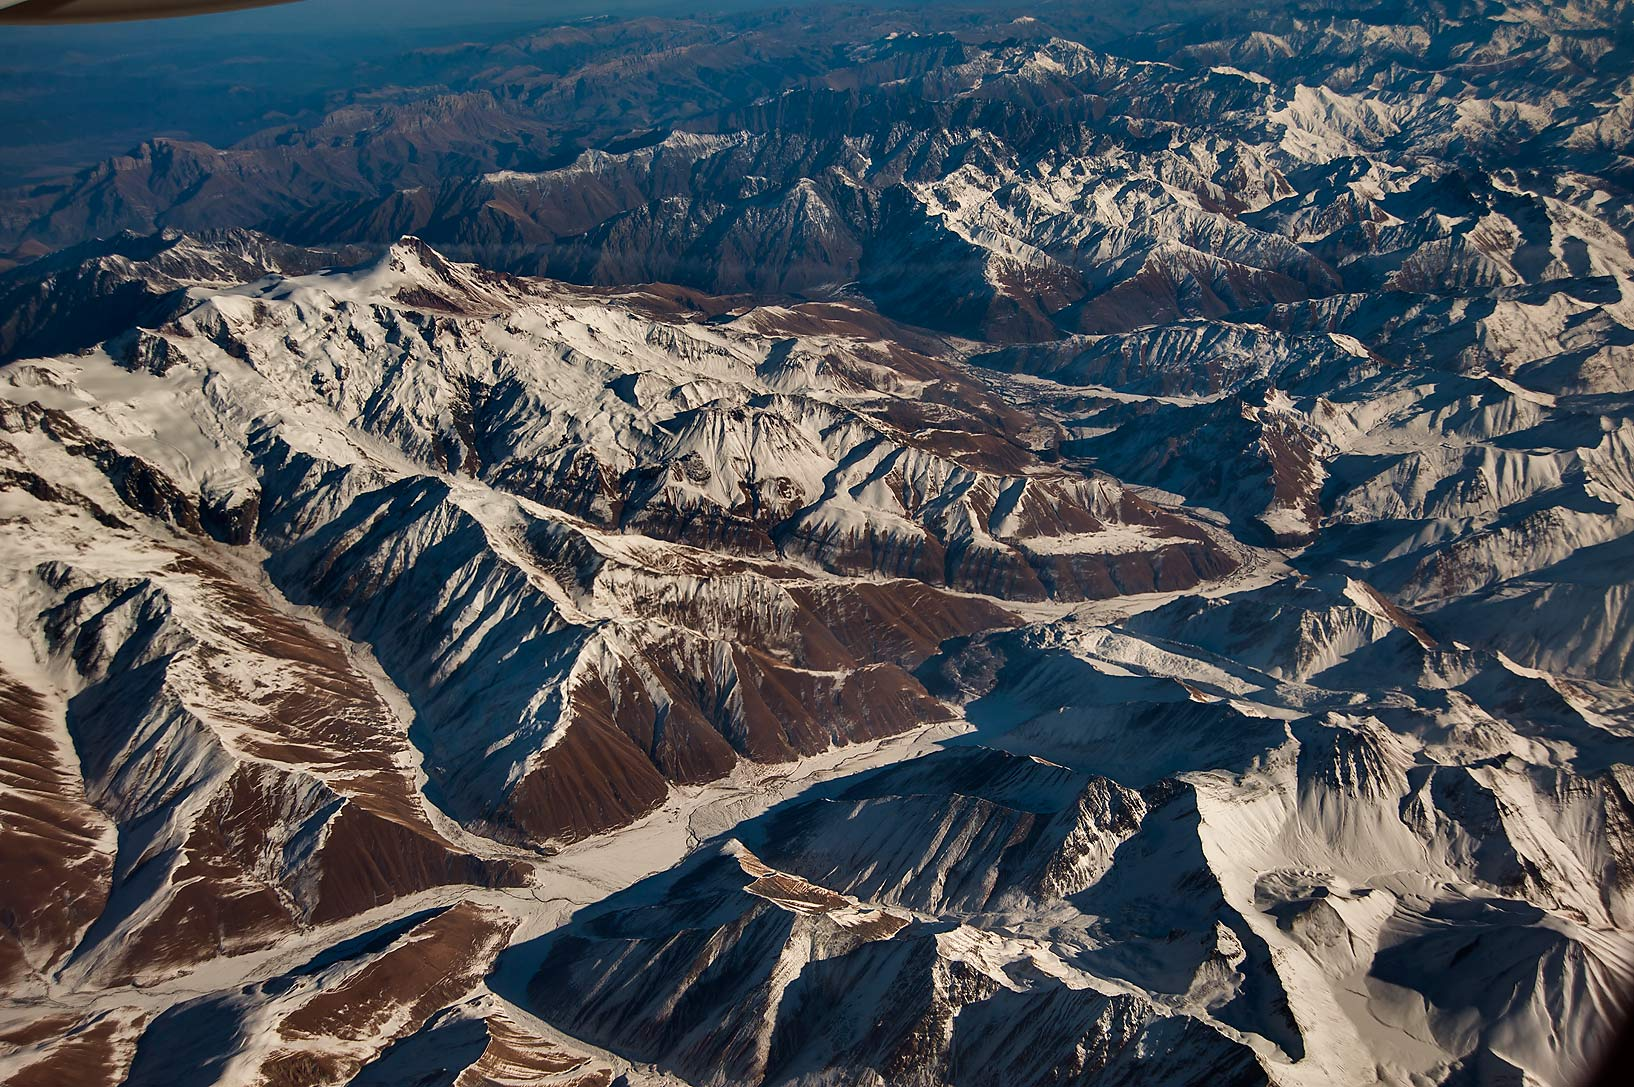 Caucasus Mountains east from Elbrus in Russia...Abu Dhabi to St.Petersburg in Russia